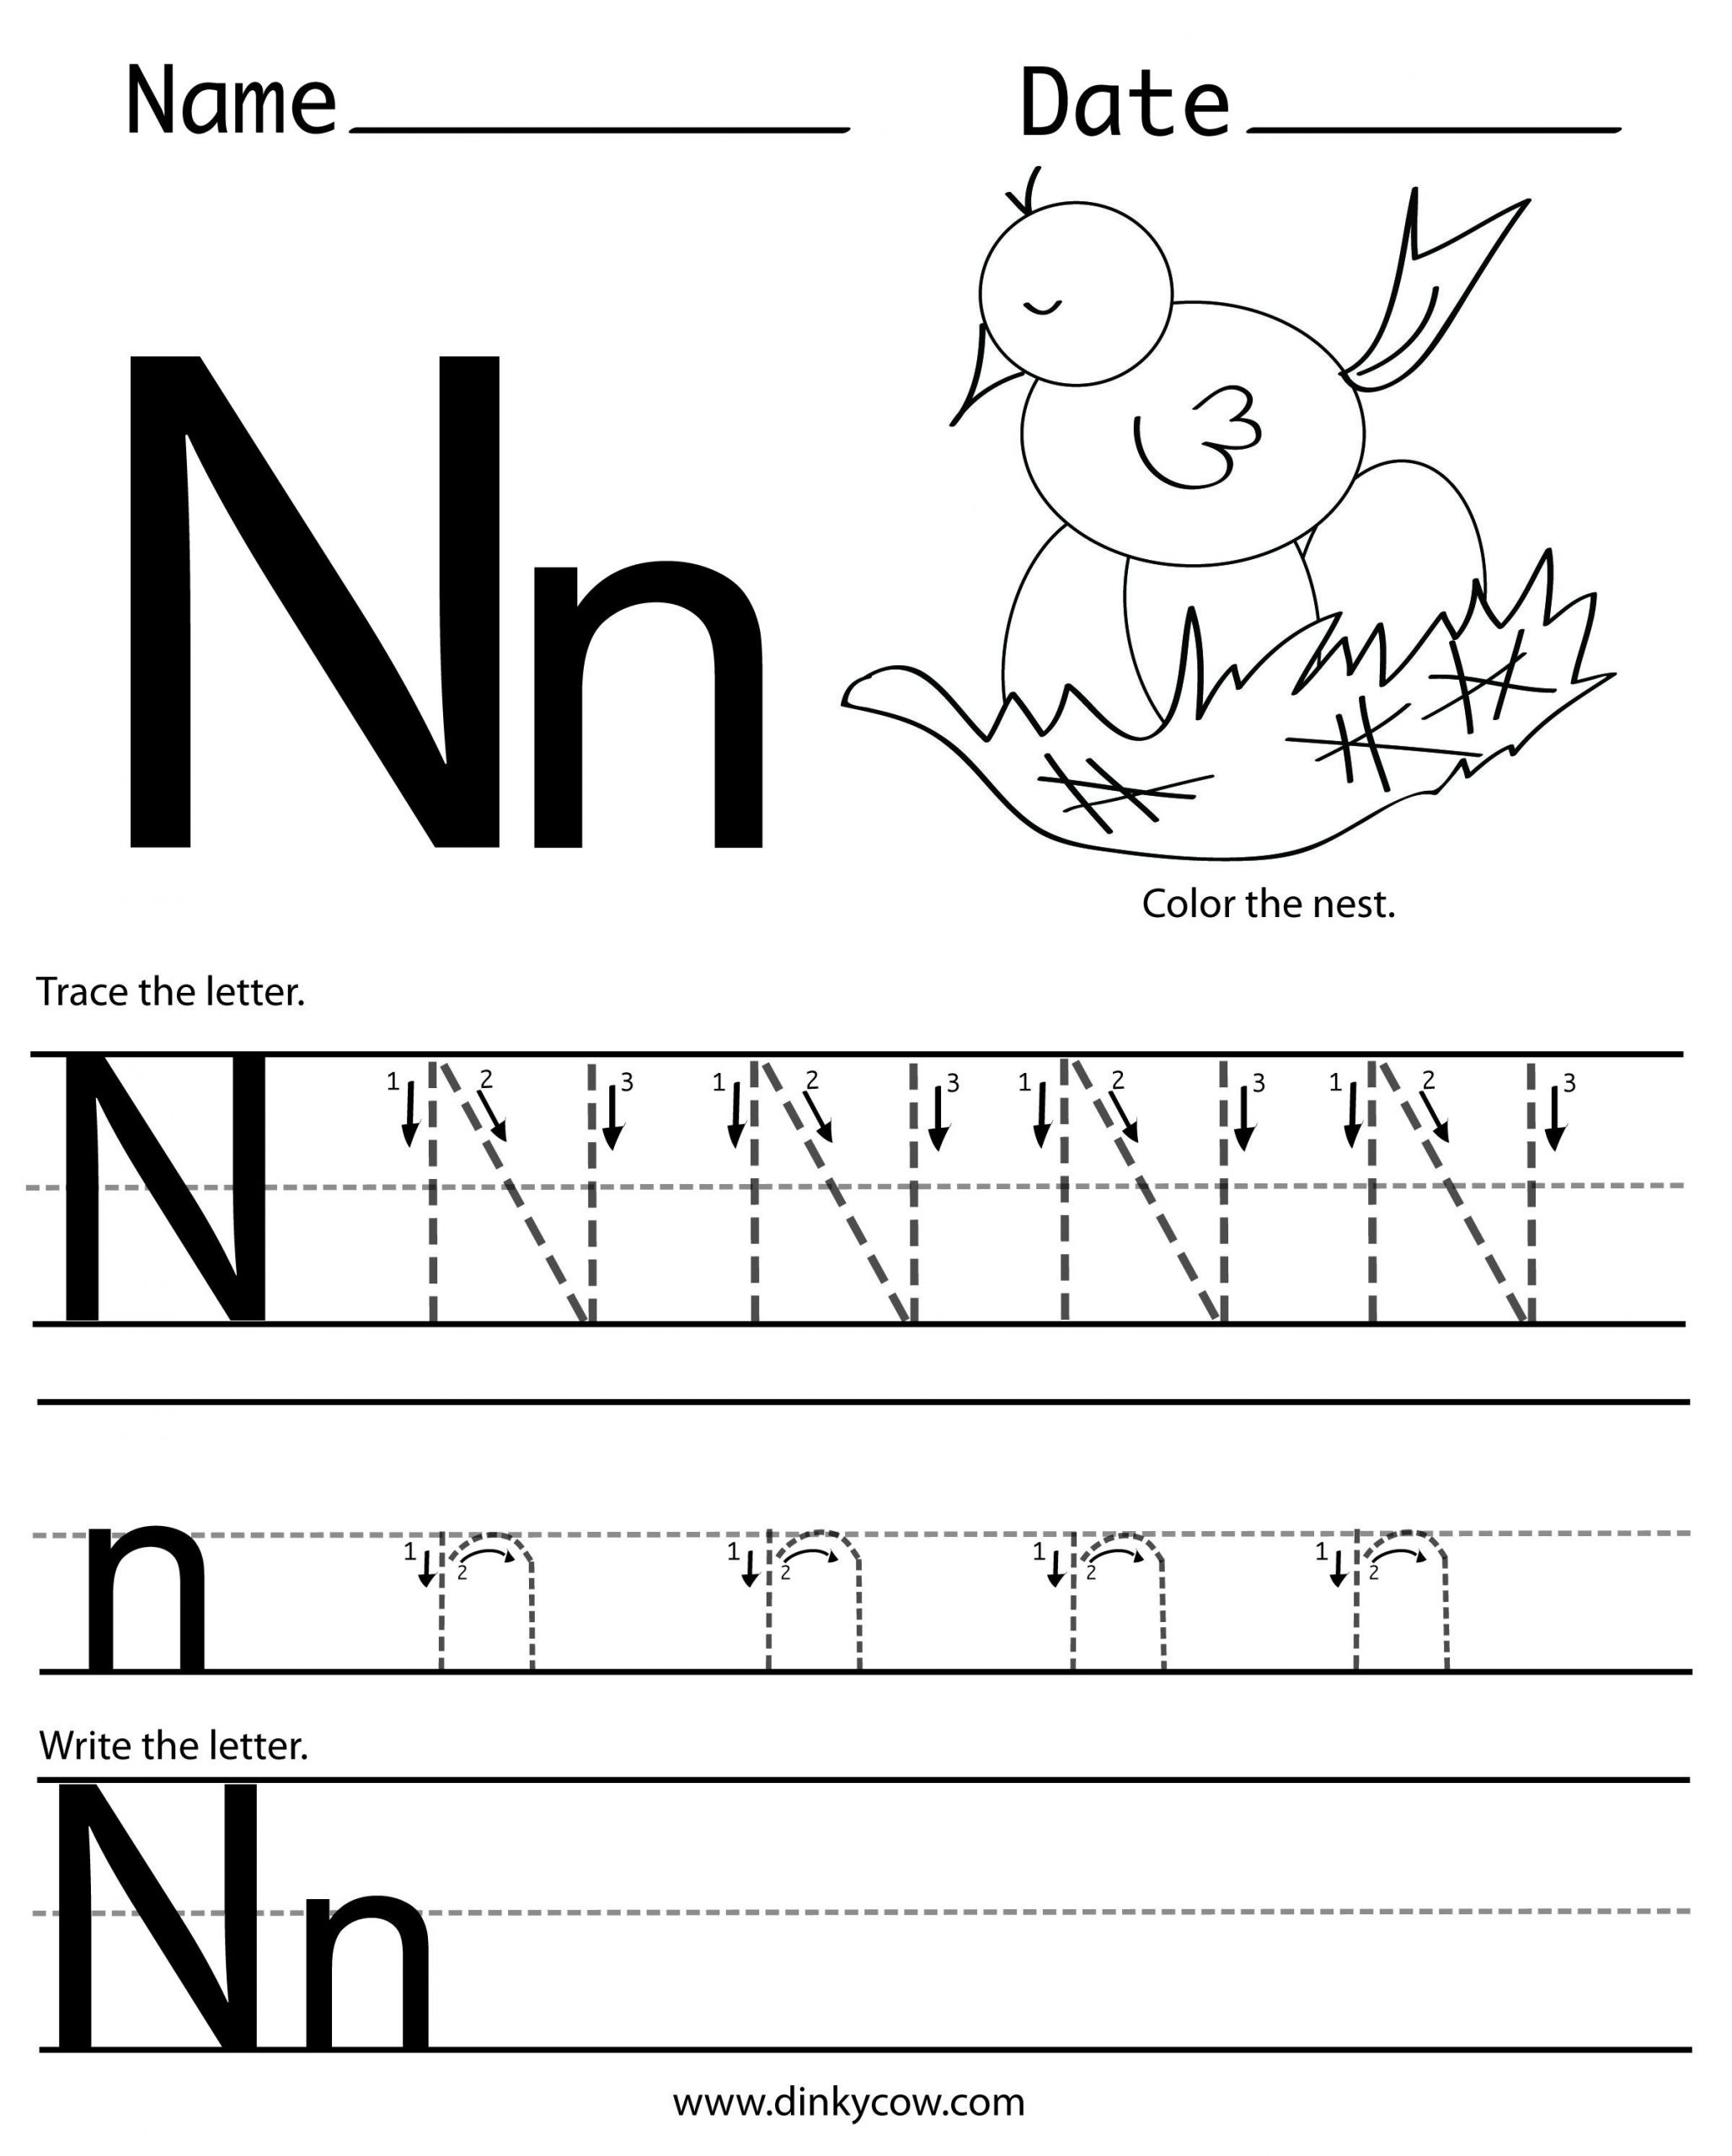 Letter N Preschool Worksheets Printable Preschool Worksheets Letter N